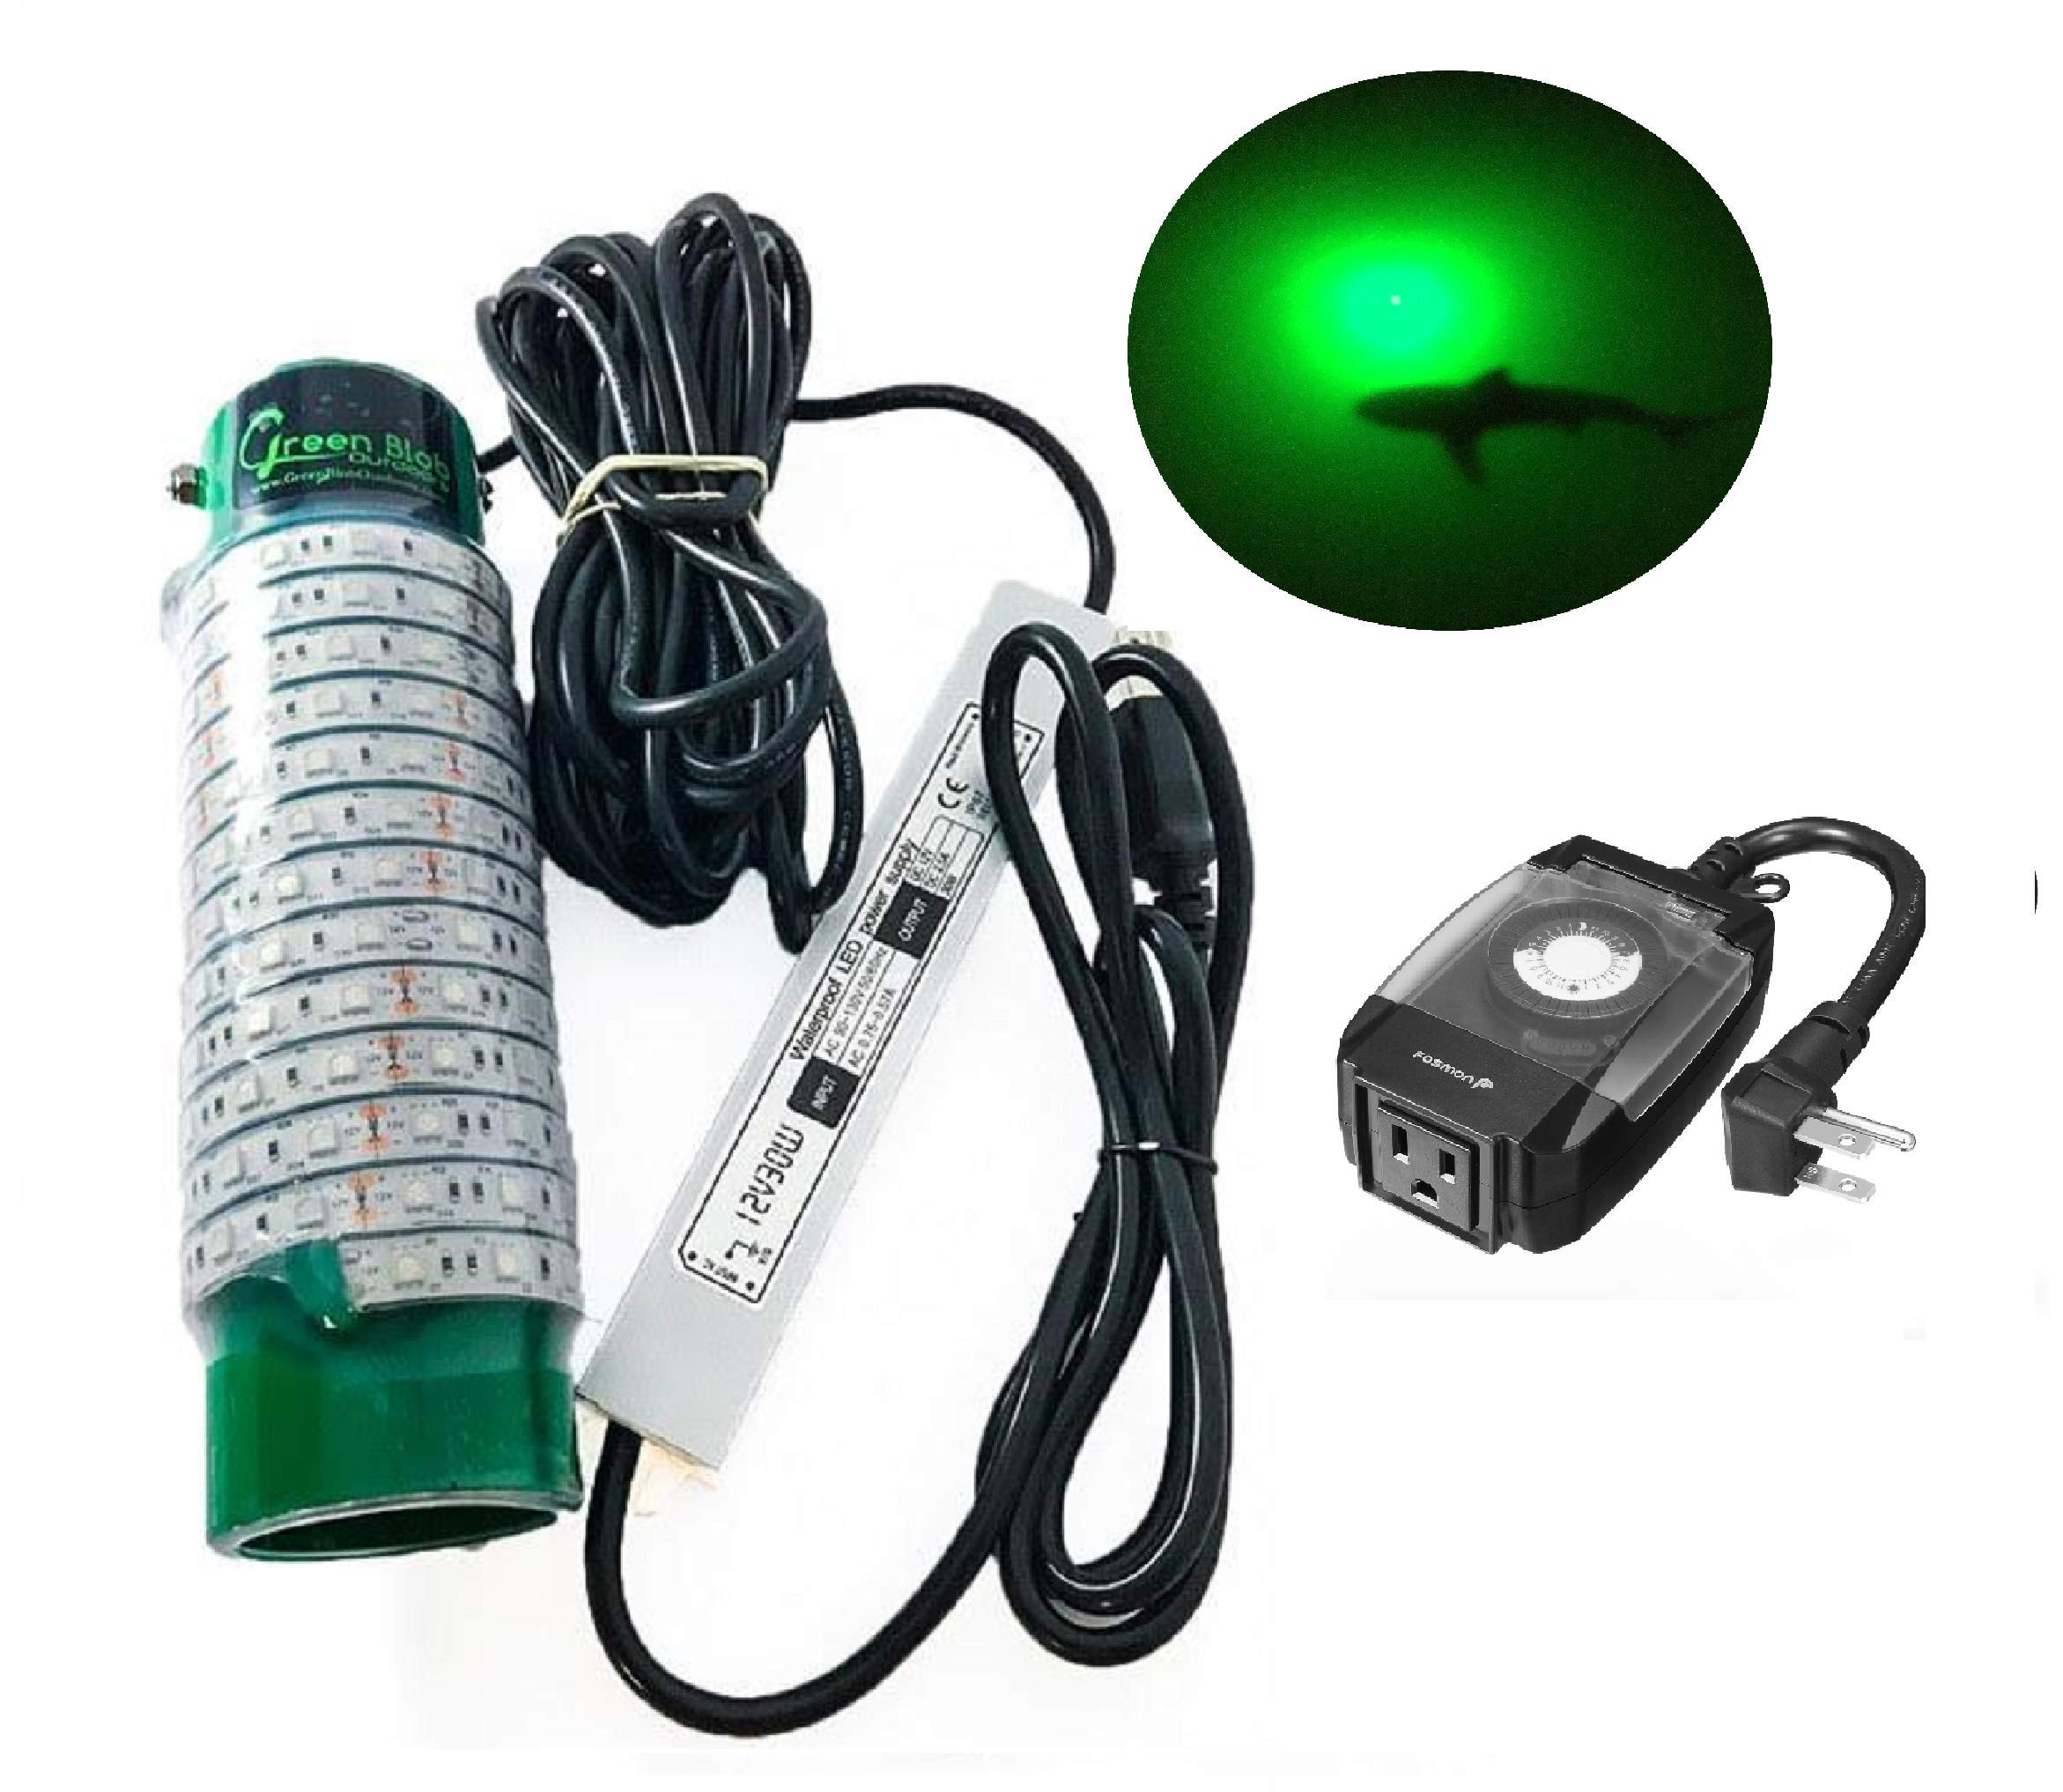 (Green, Blue, or White) Blob Underwater LED Night Fishing Light DOCK-7500 110volt AC (with Timer) 30ft Cord Fish Finding System, Bait rig, Fish Attractor, Ponds, Snook (Green with Timer)